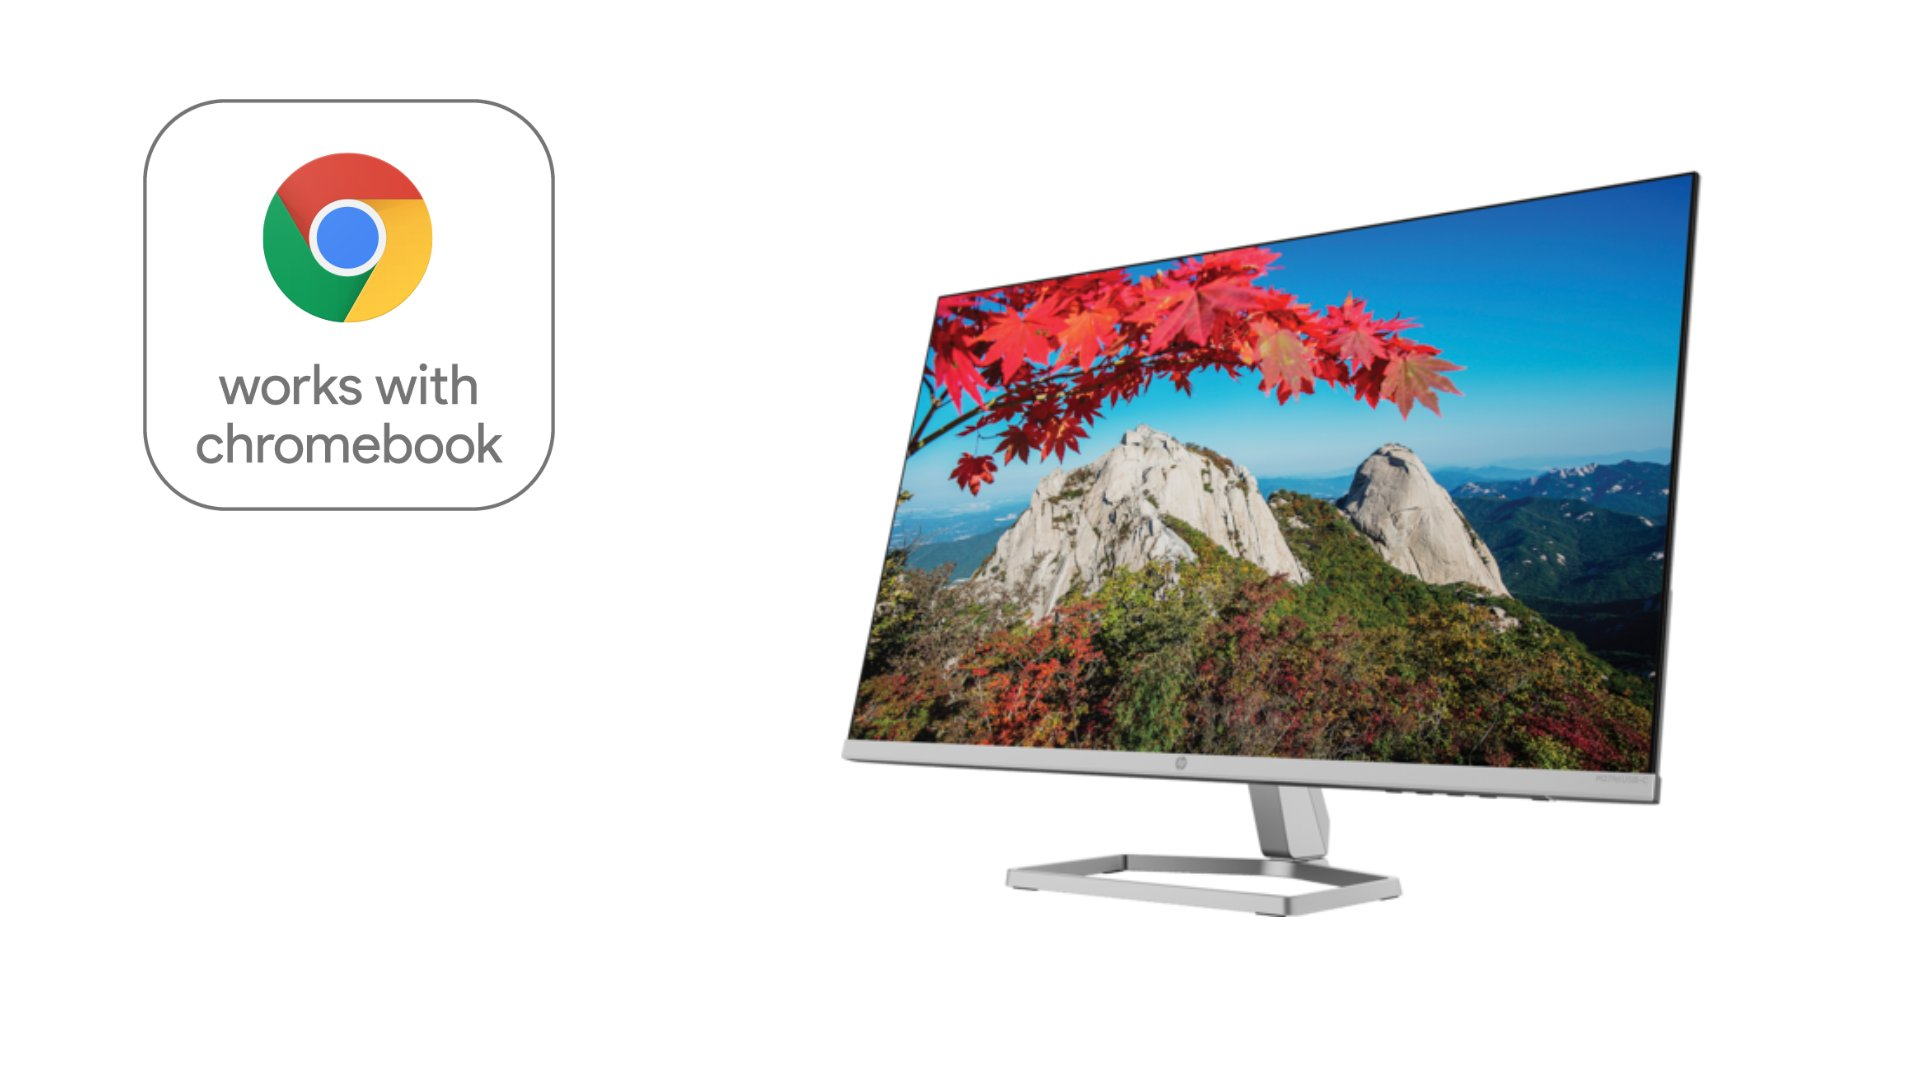 """HP debuts first-ever """"Works with Chromebook"""" desktop monitor"""